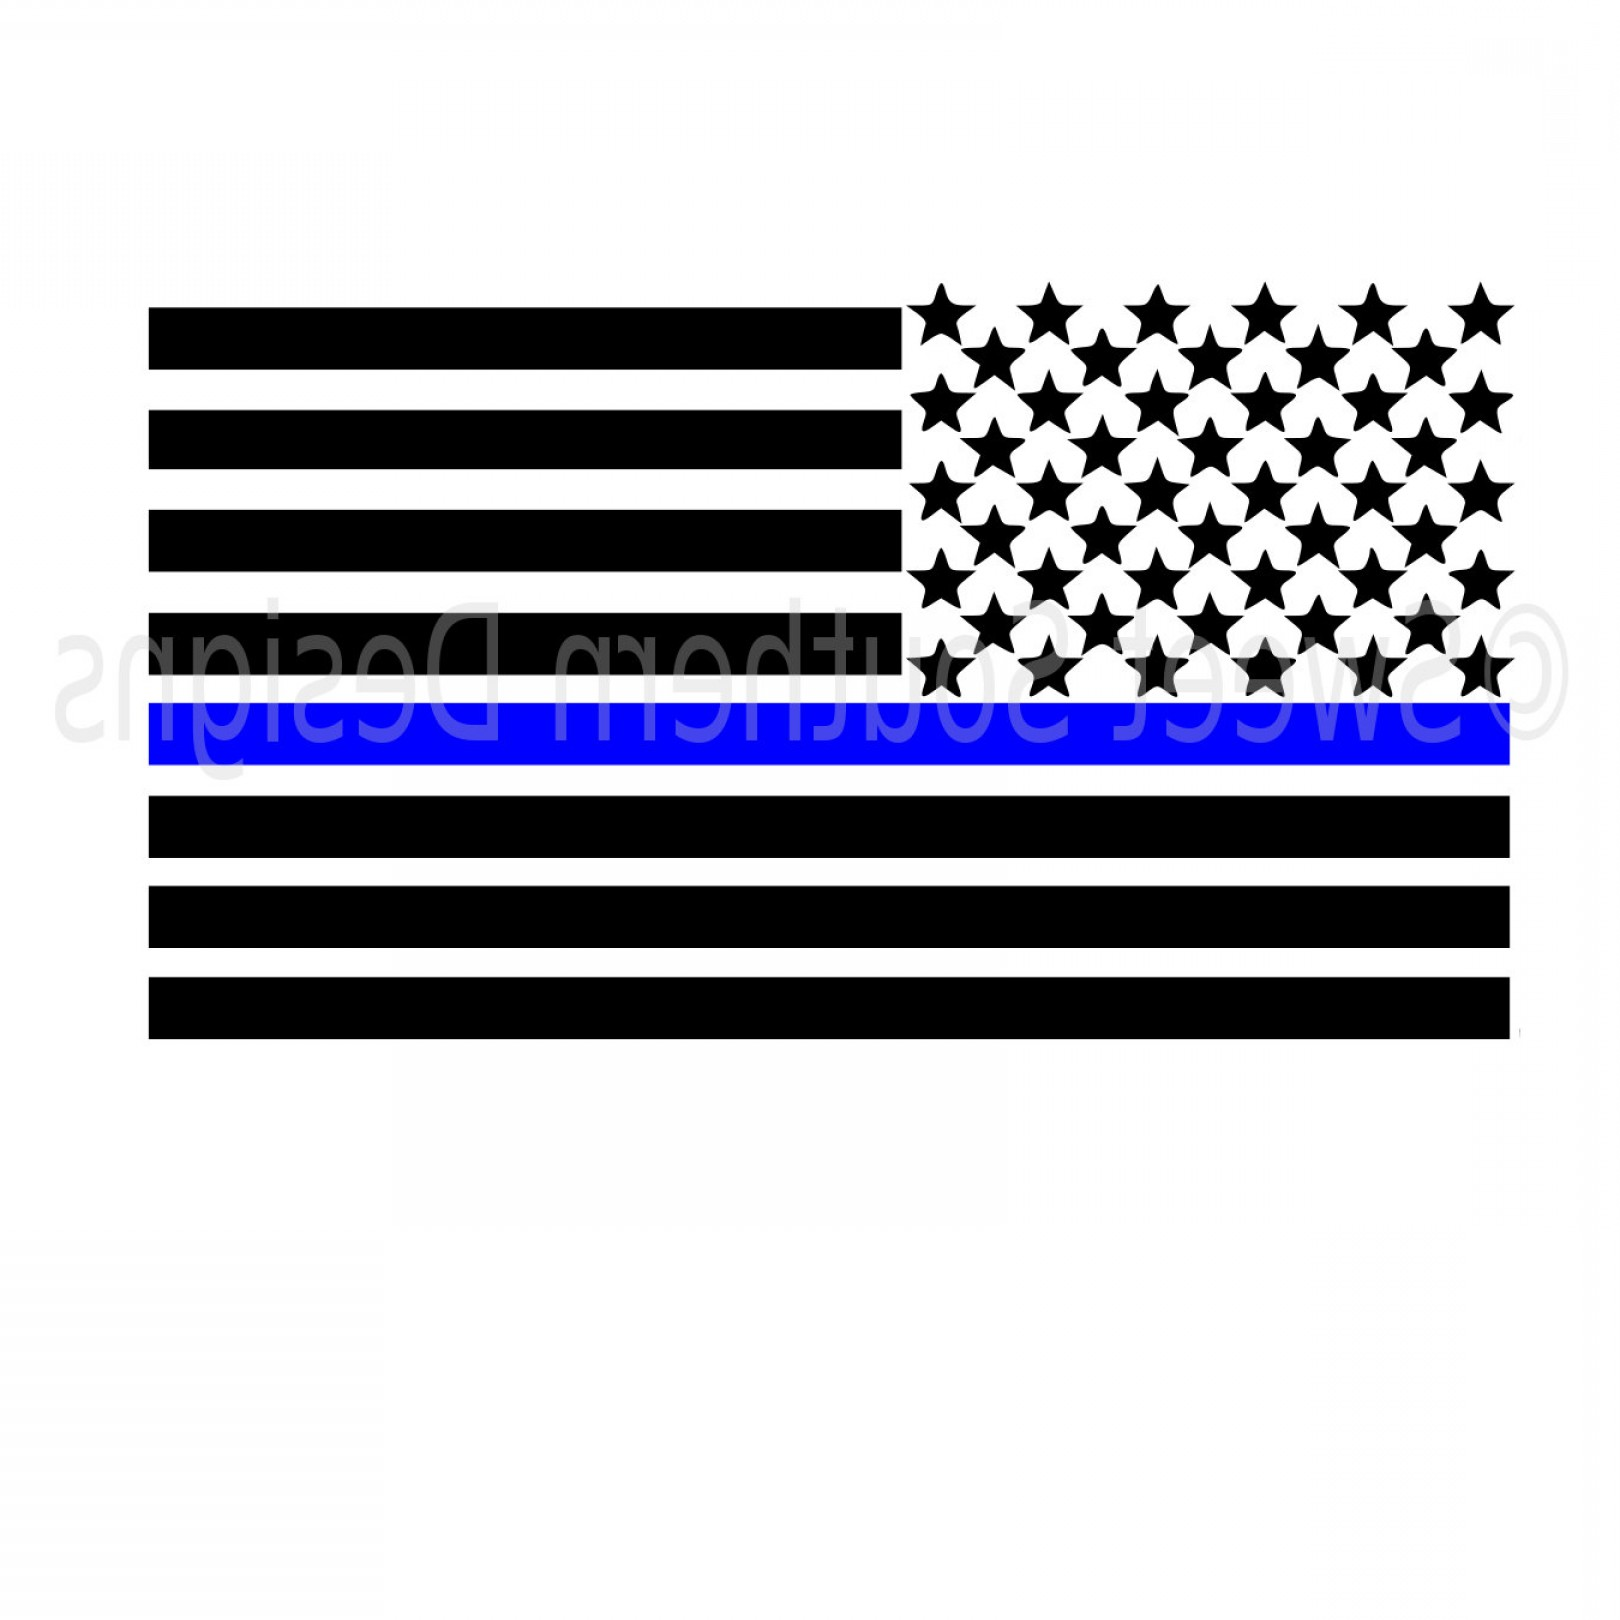 1620x1620 Results For Thin Blue Line Flag Vector